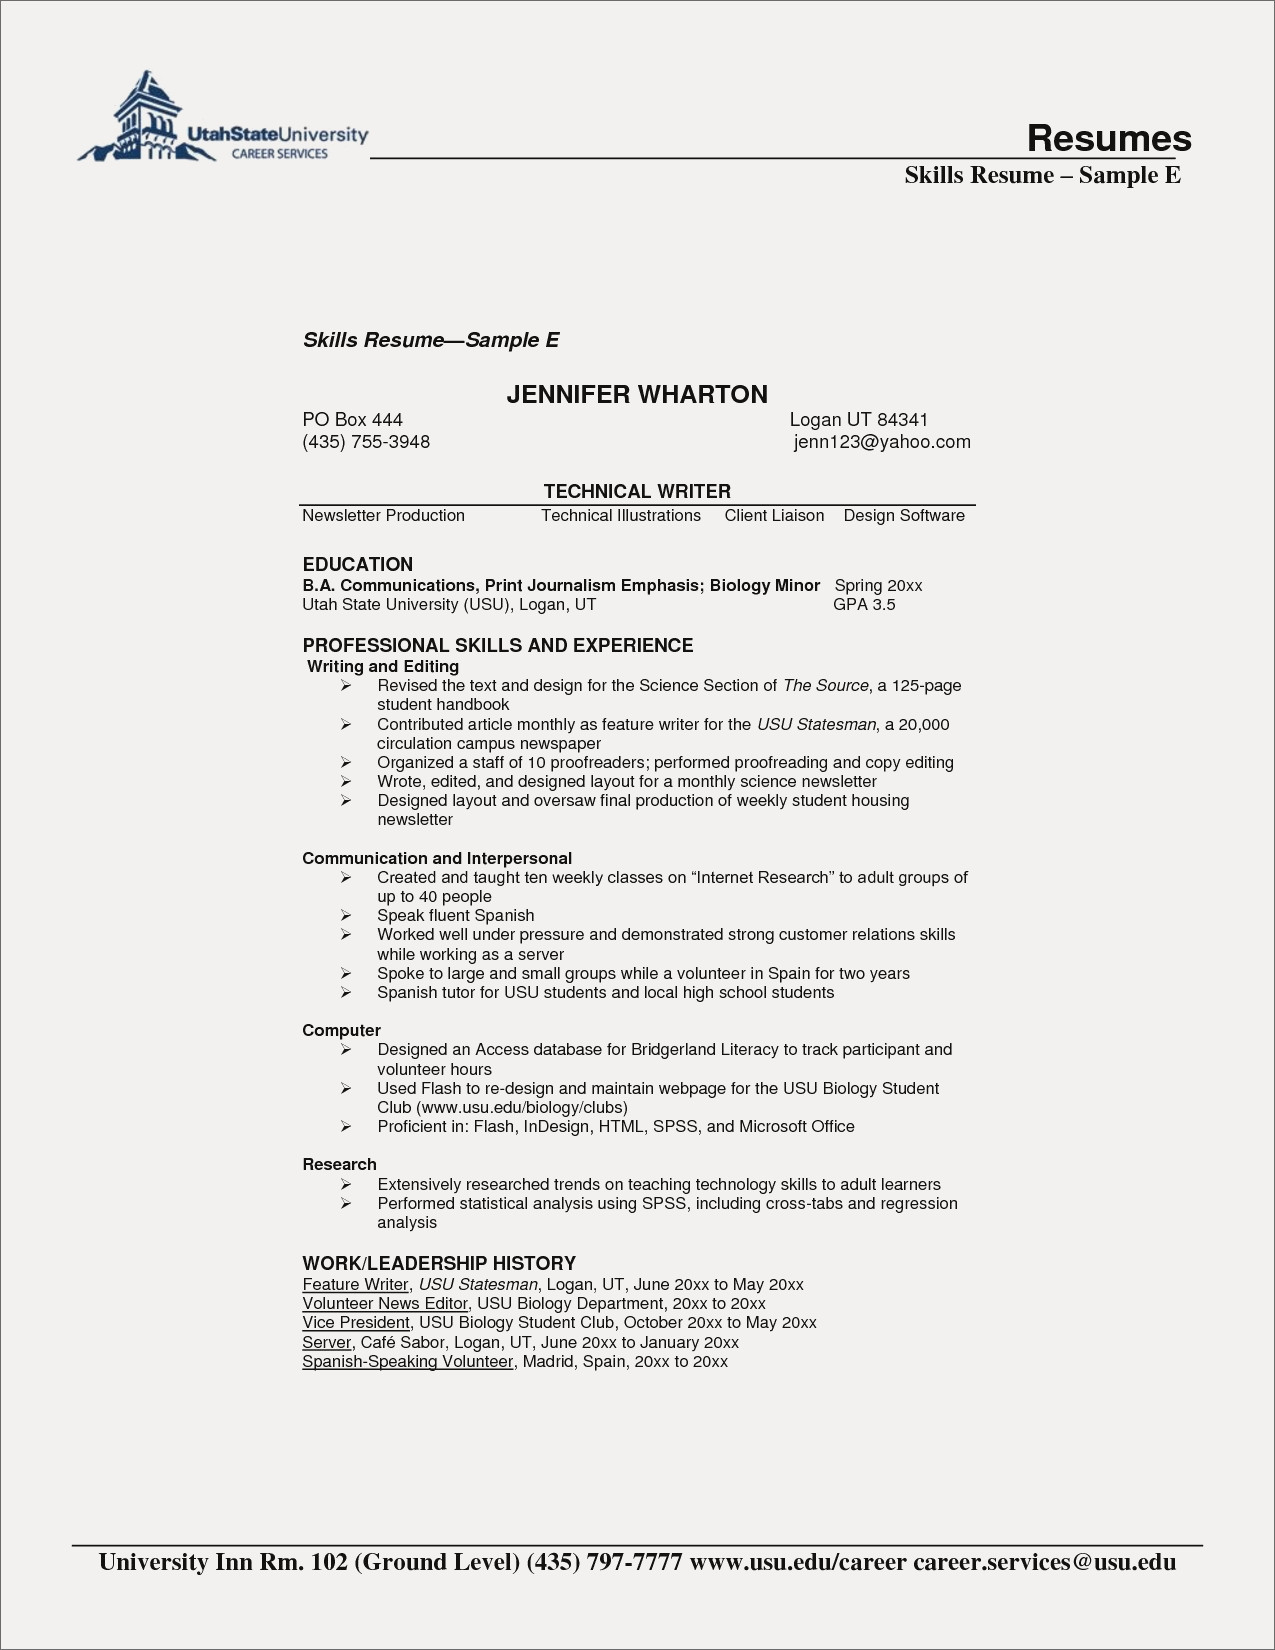 Top Skills for Resume - Cheap Resumes Fresh Puter Skills Example Unique Examples Resumes